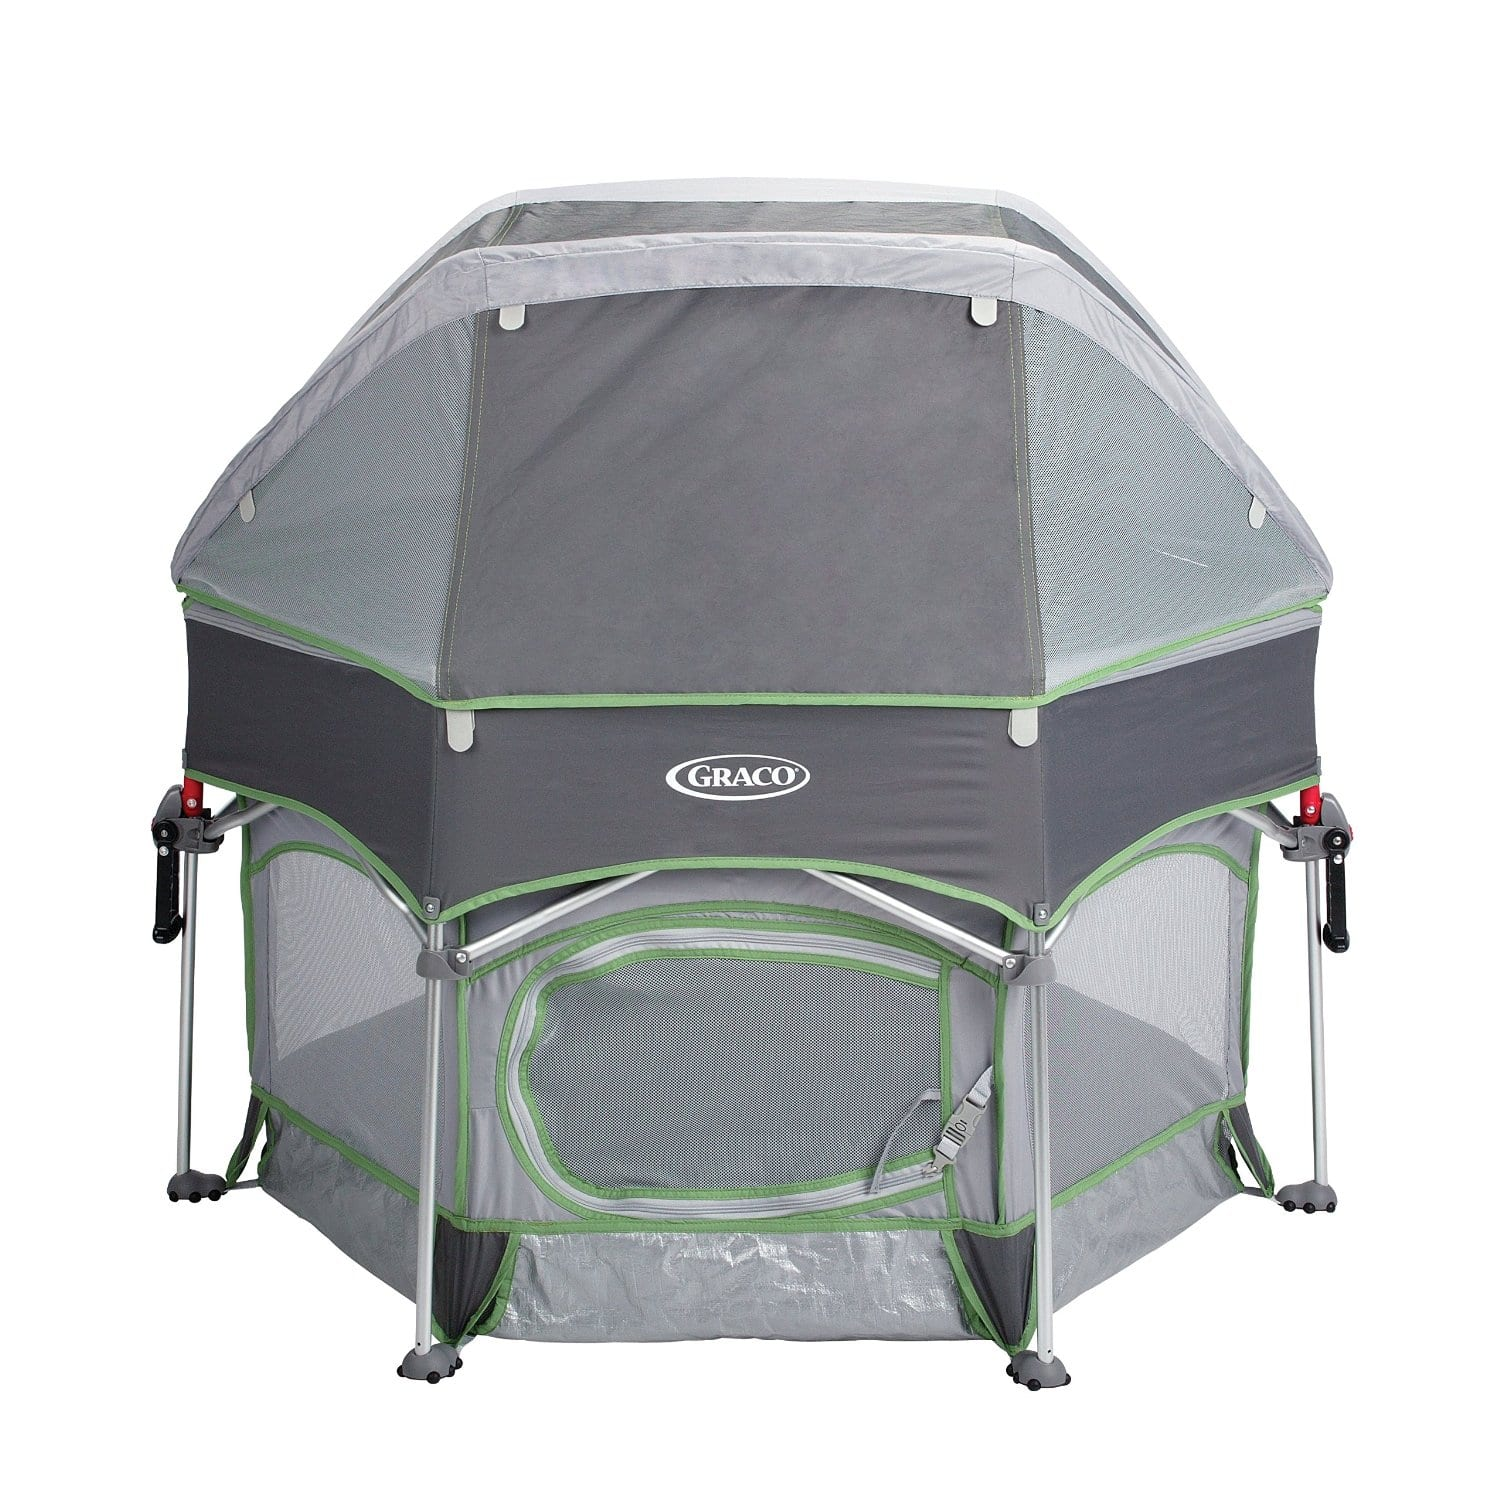 Graco Pack 'n Play Sport Playard, Parkside - Save $56 - $93.99